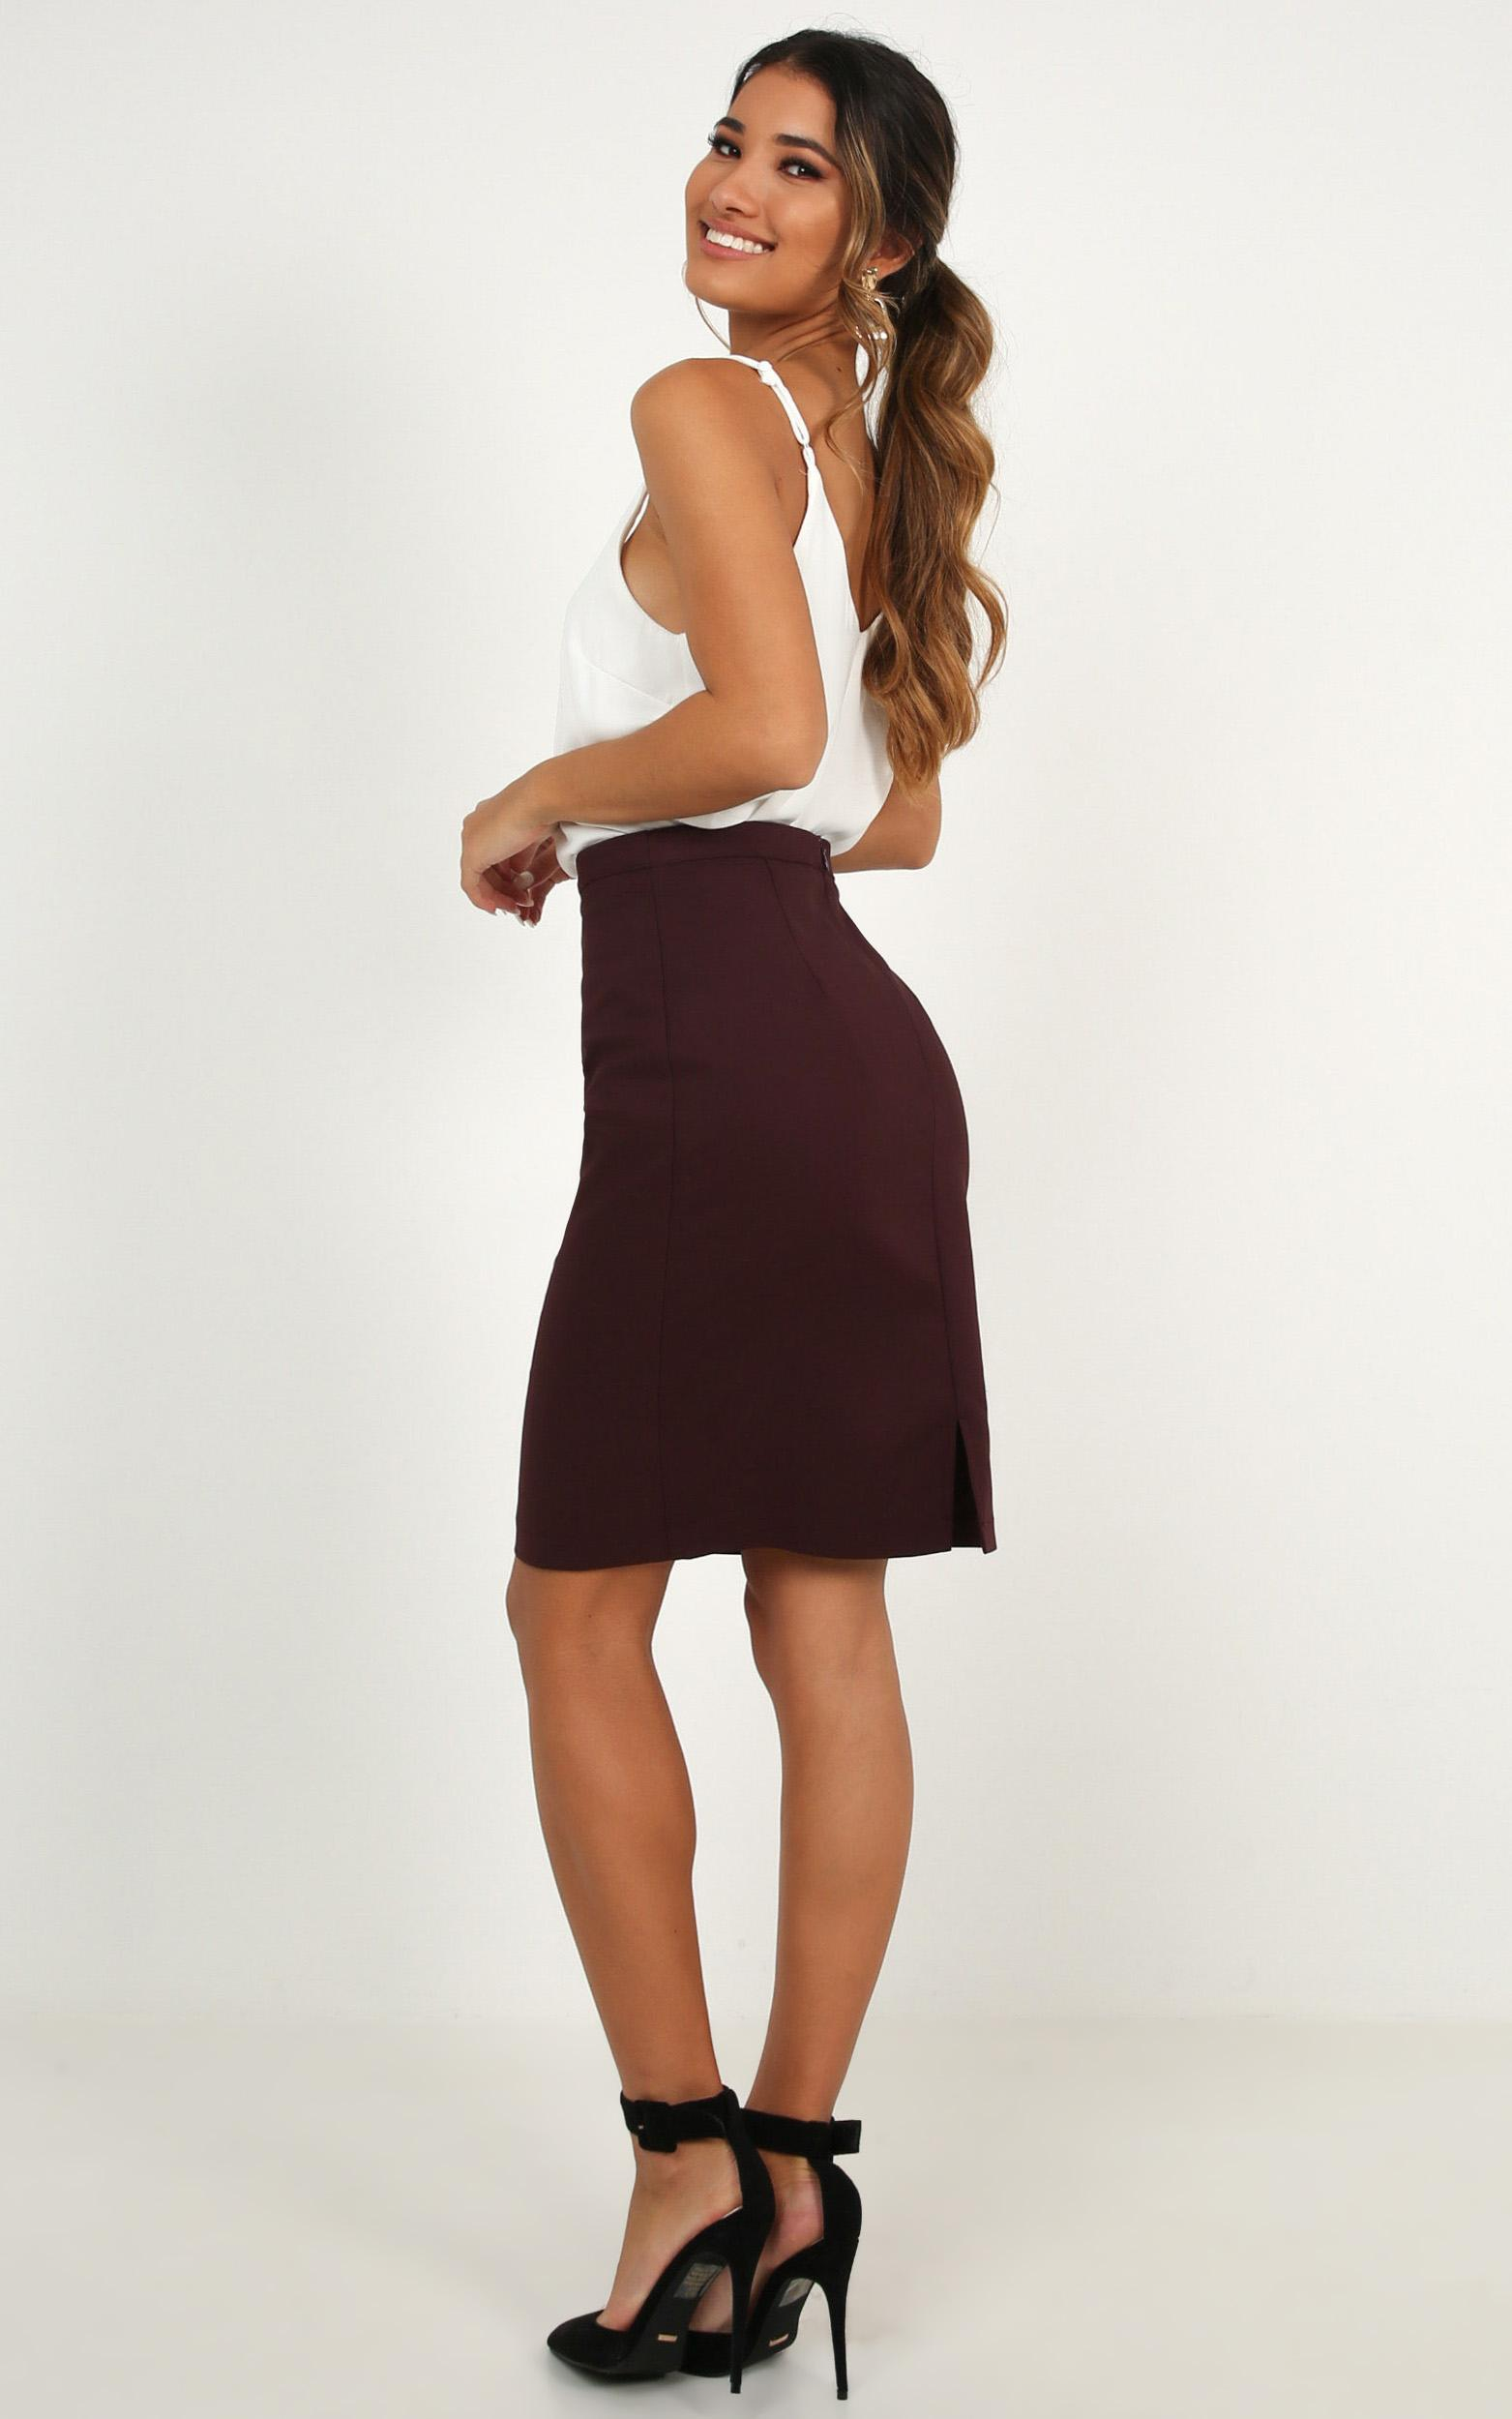 Busy Schedule Skirt in aubergine - 20 (XXXXL), Plum, hi-res image number null